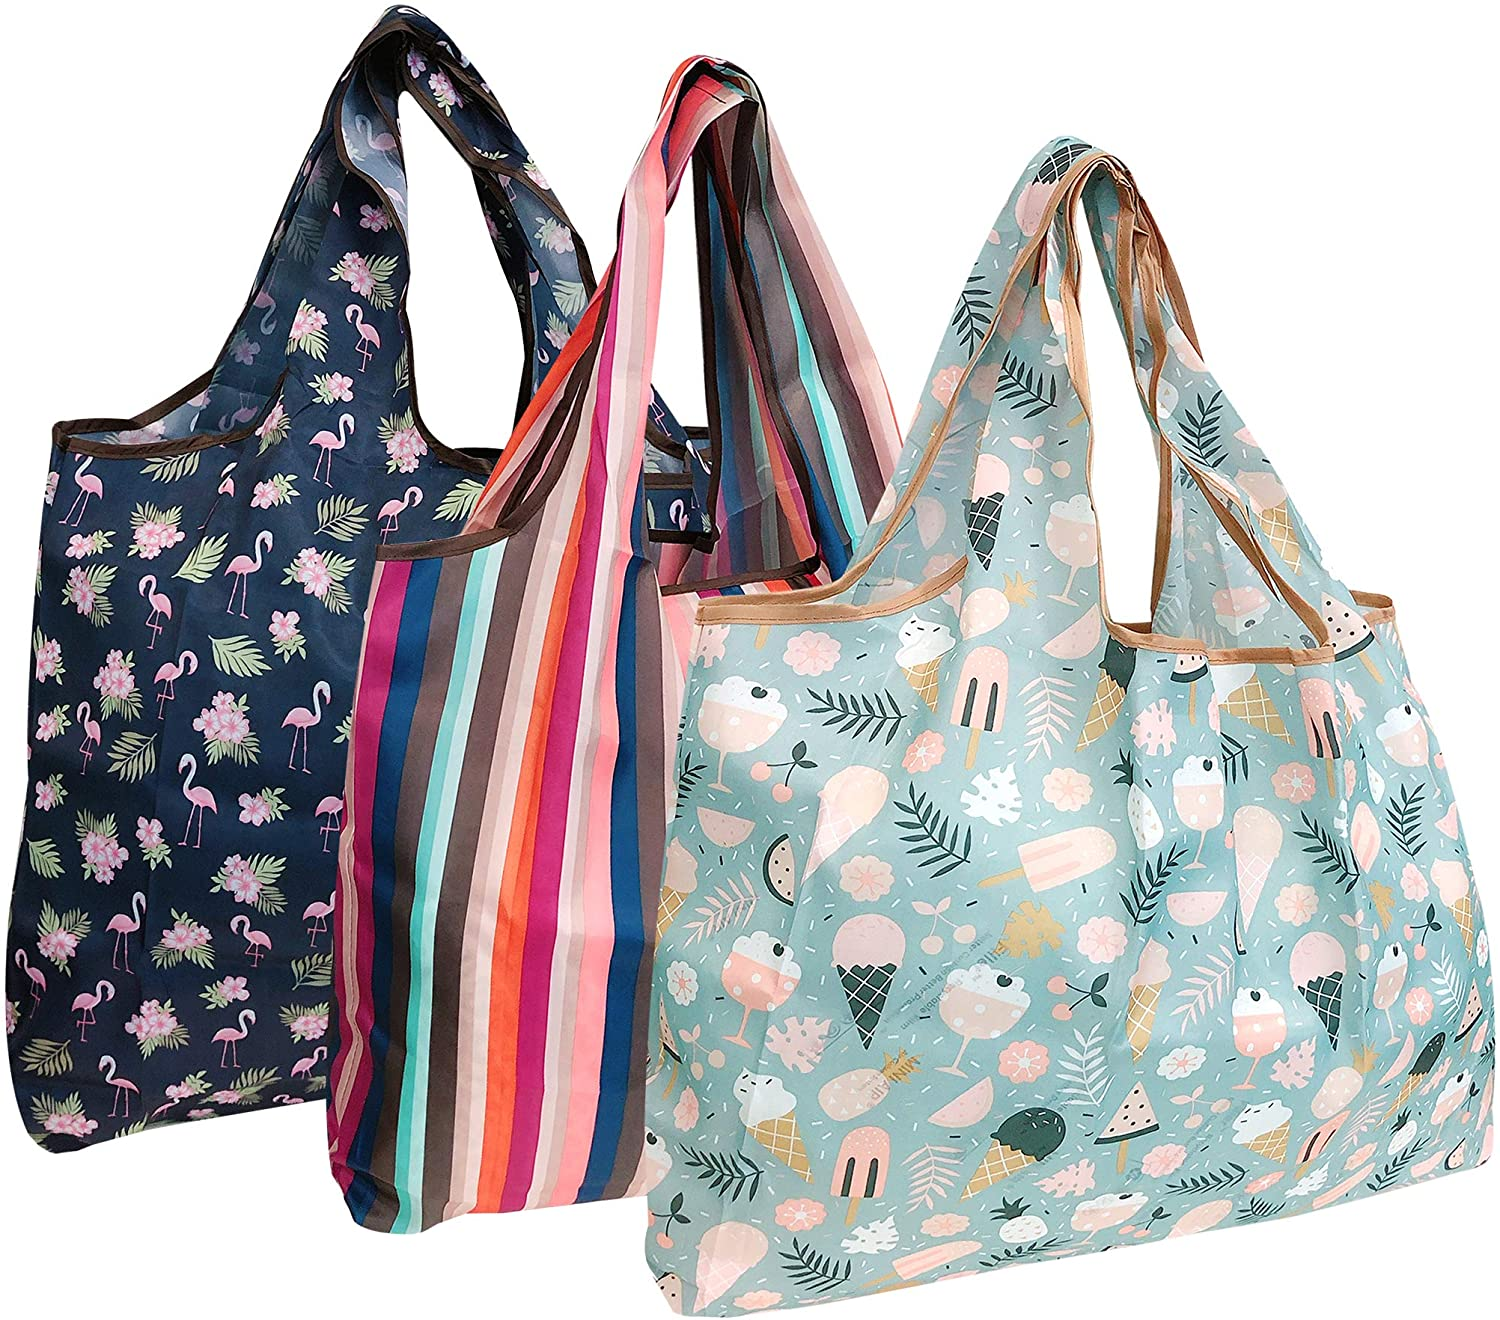 allydrew Large Foldable Tote Nylon Reusable Grocery Bag, 3 Pack, Summer Vaction